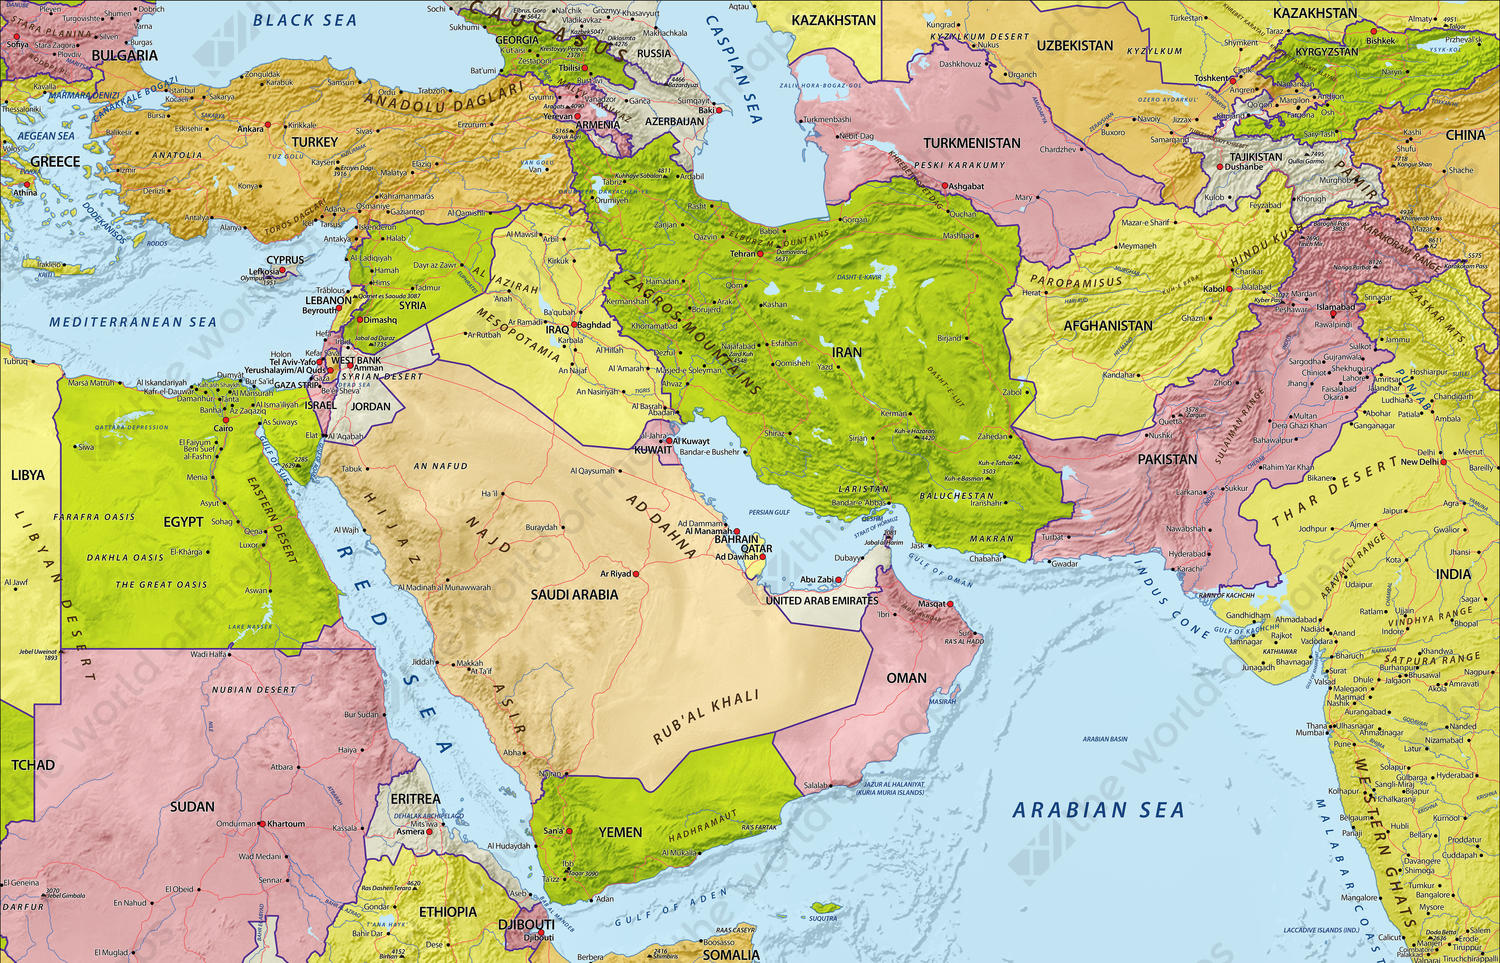 Digital Map Middle East with relief 632 | The World of Maps.com